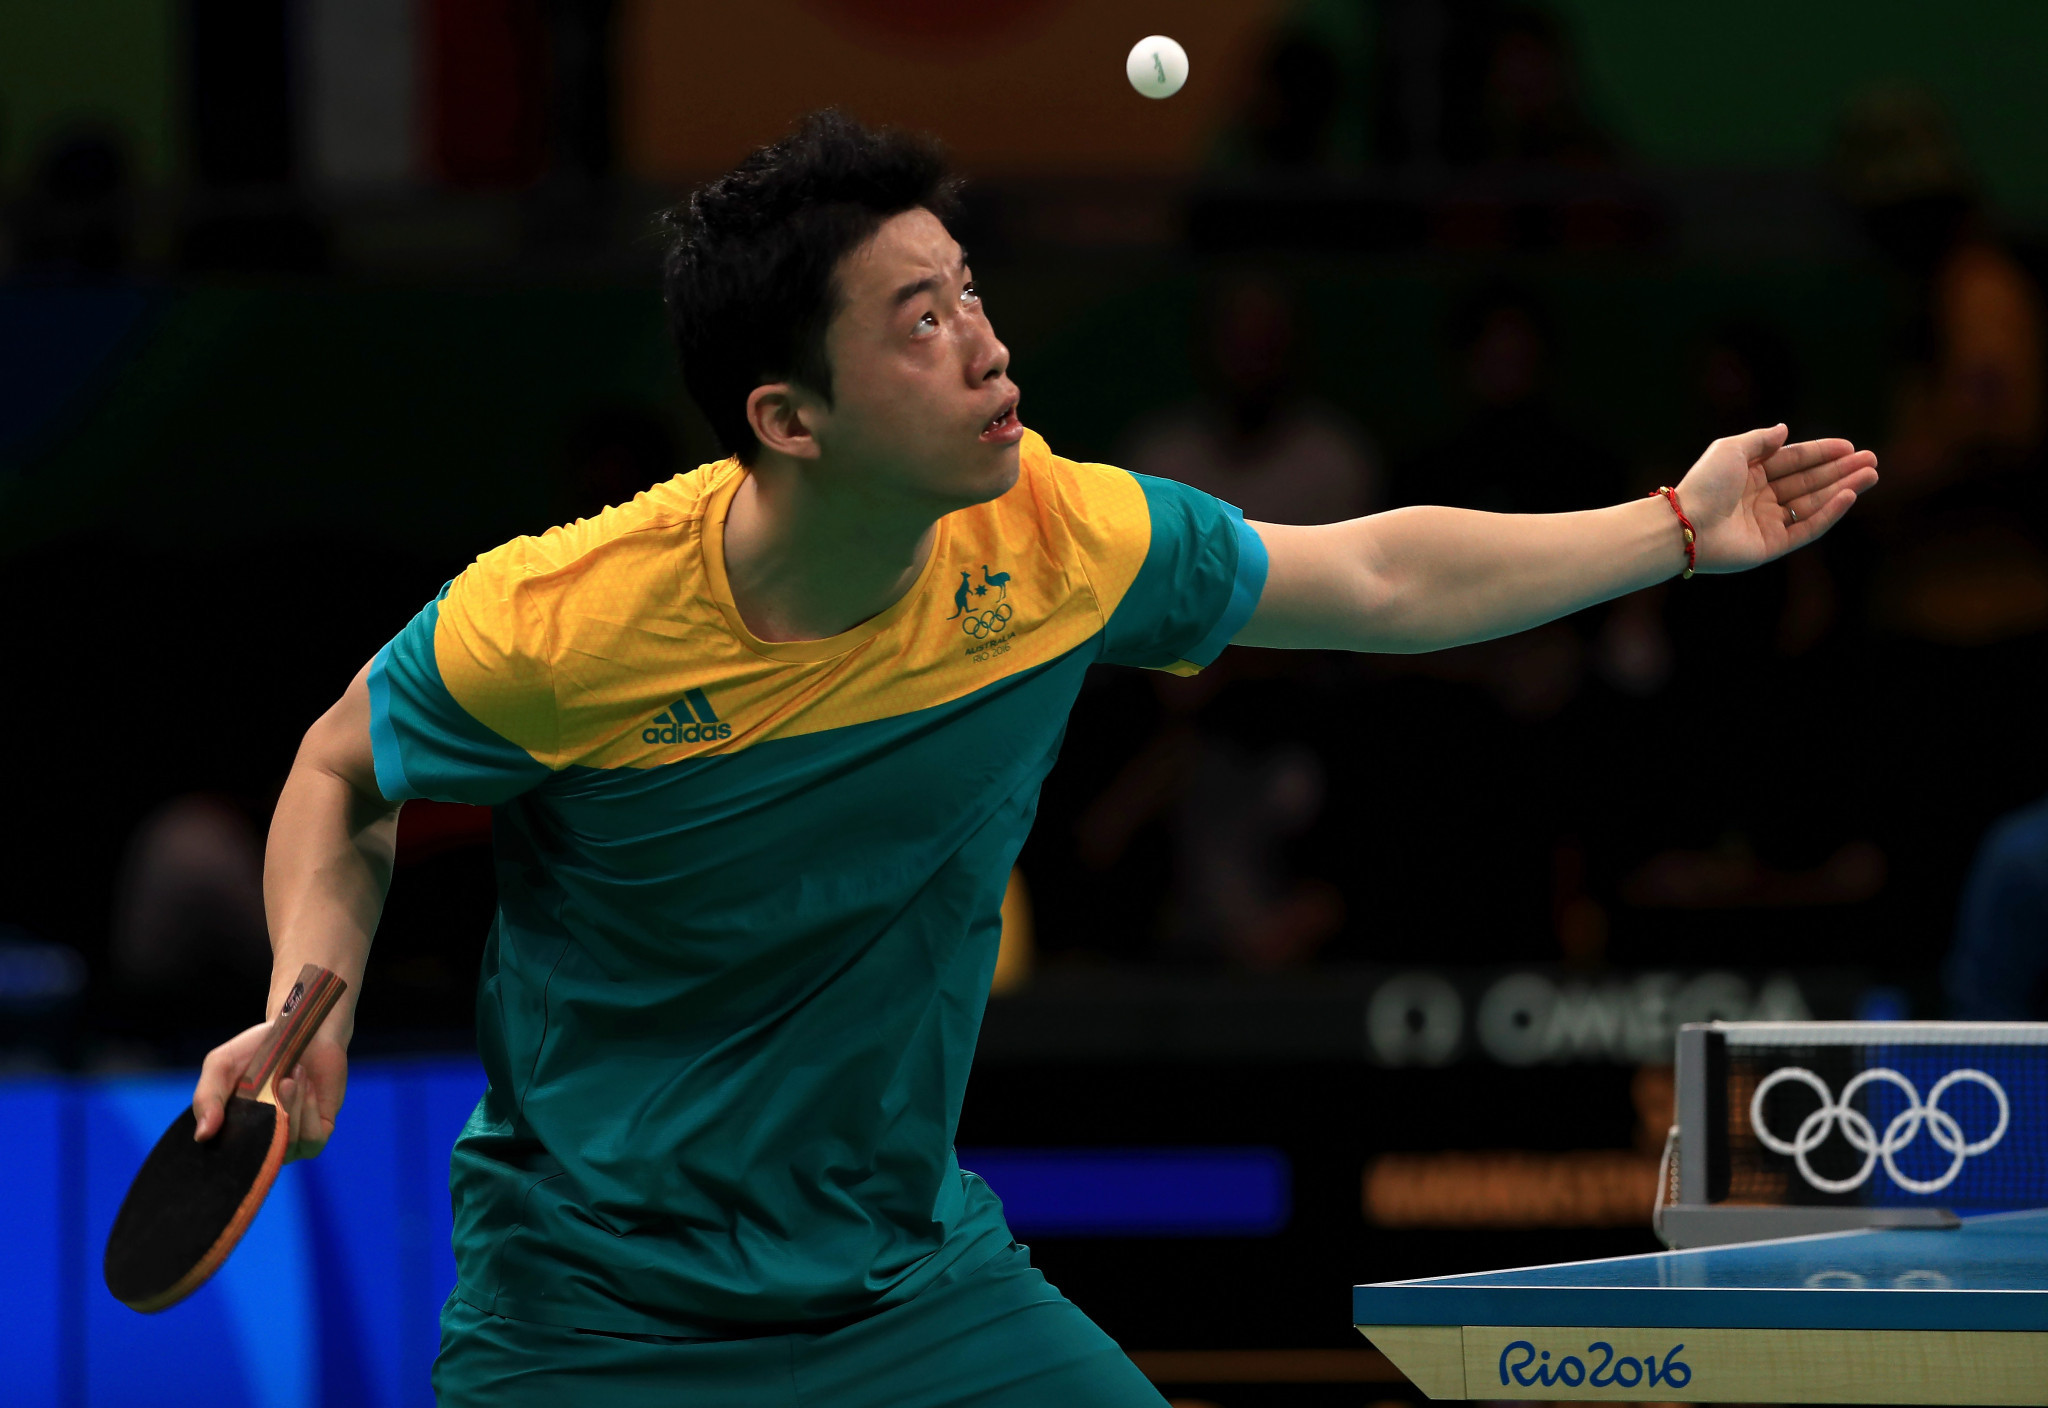 Xin Yan won four gold medals in the men's singles, men's doubles, mixed doubles and team events ©Getty Images